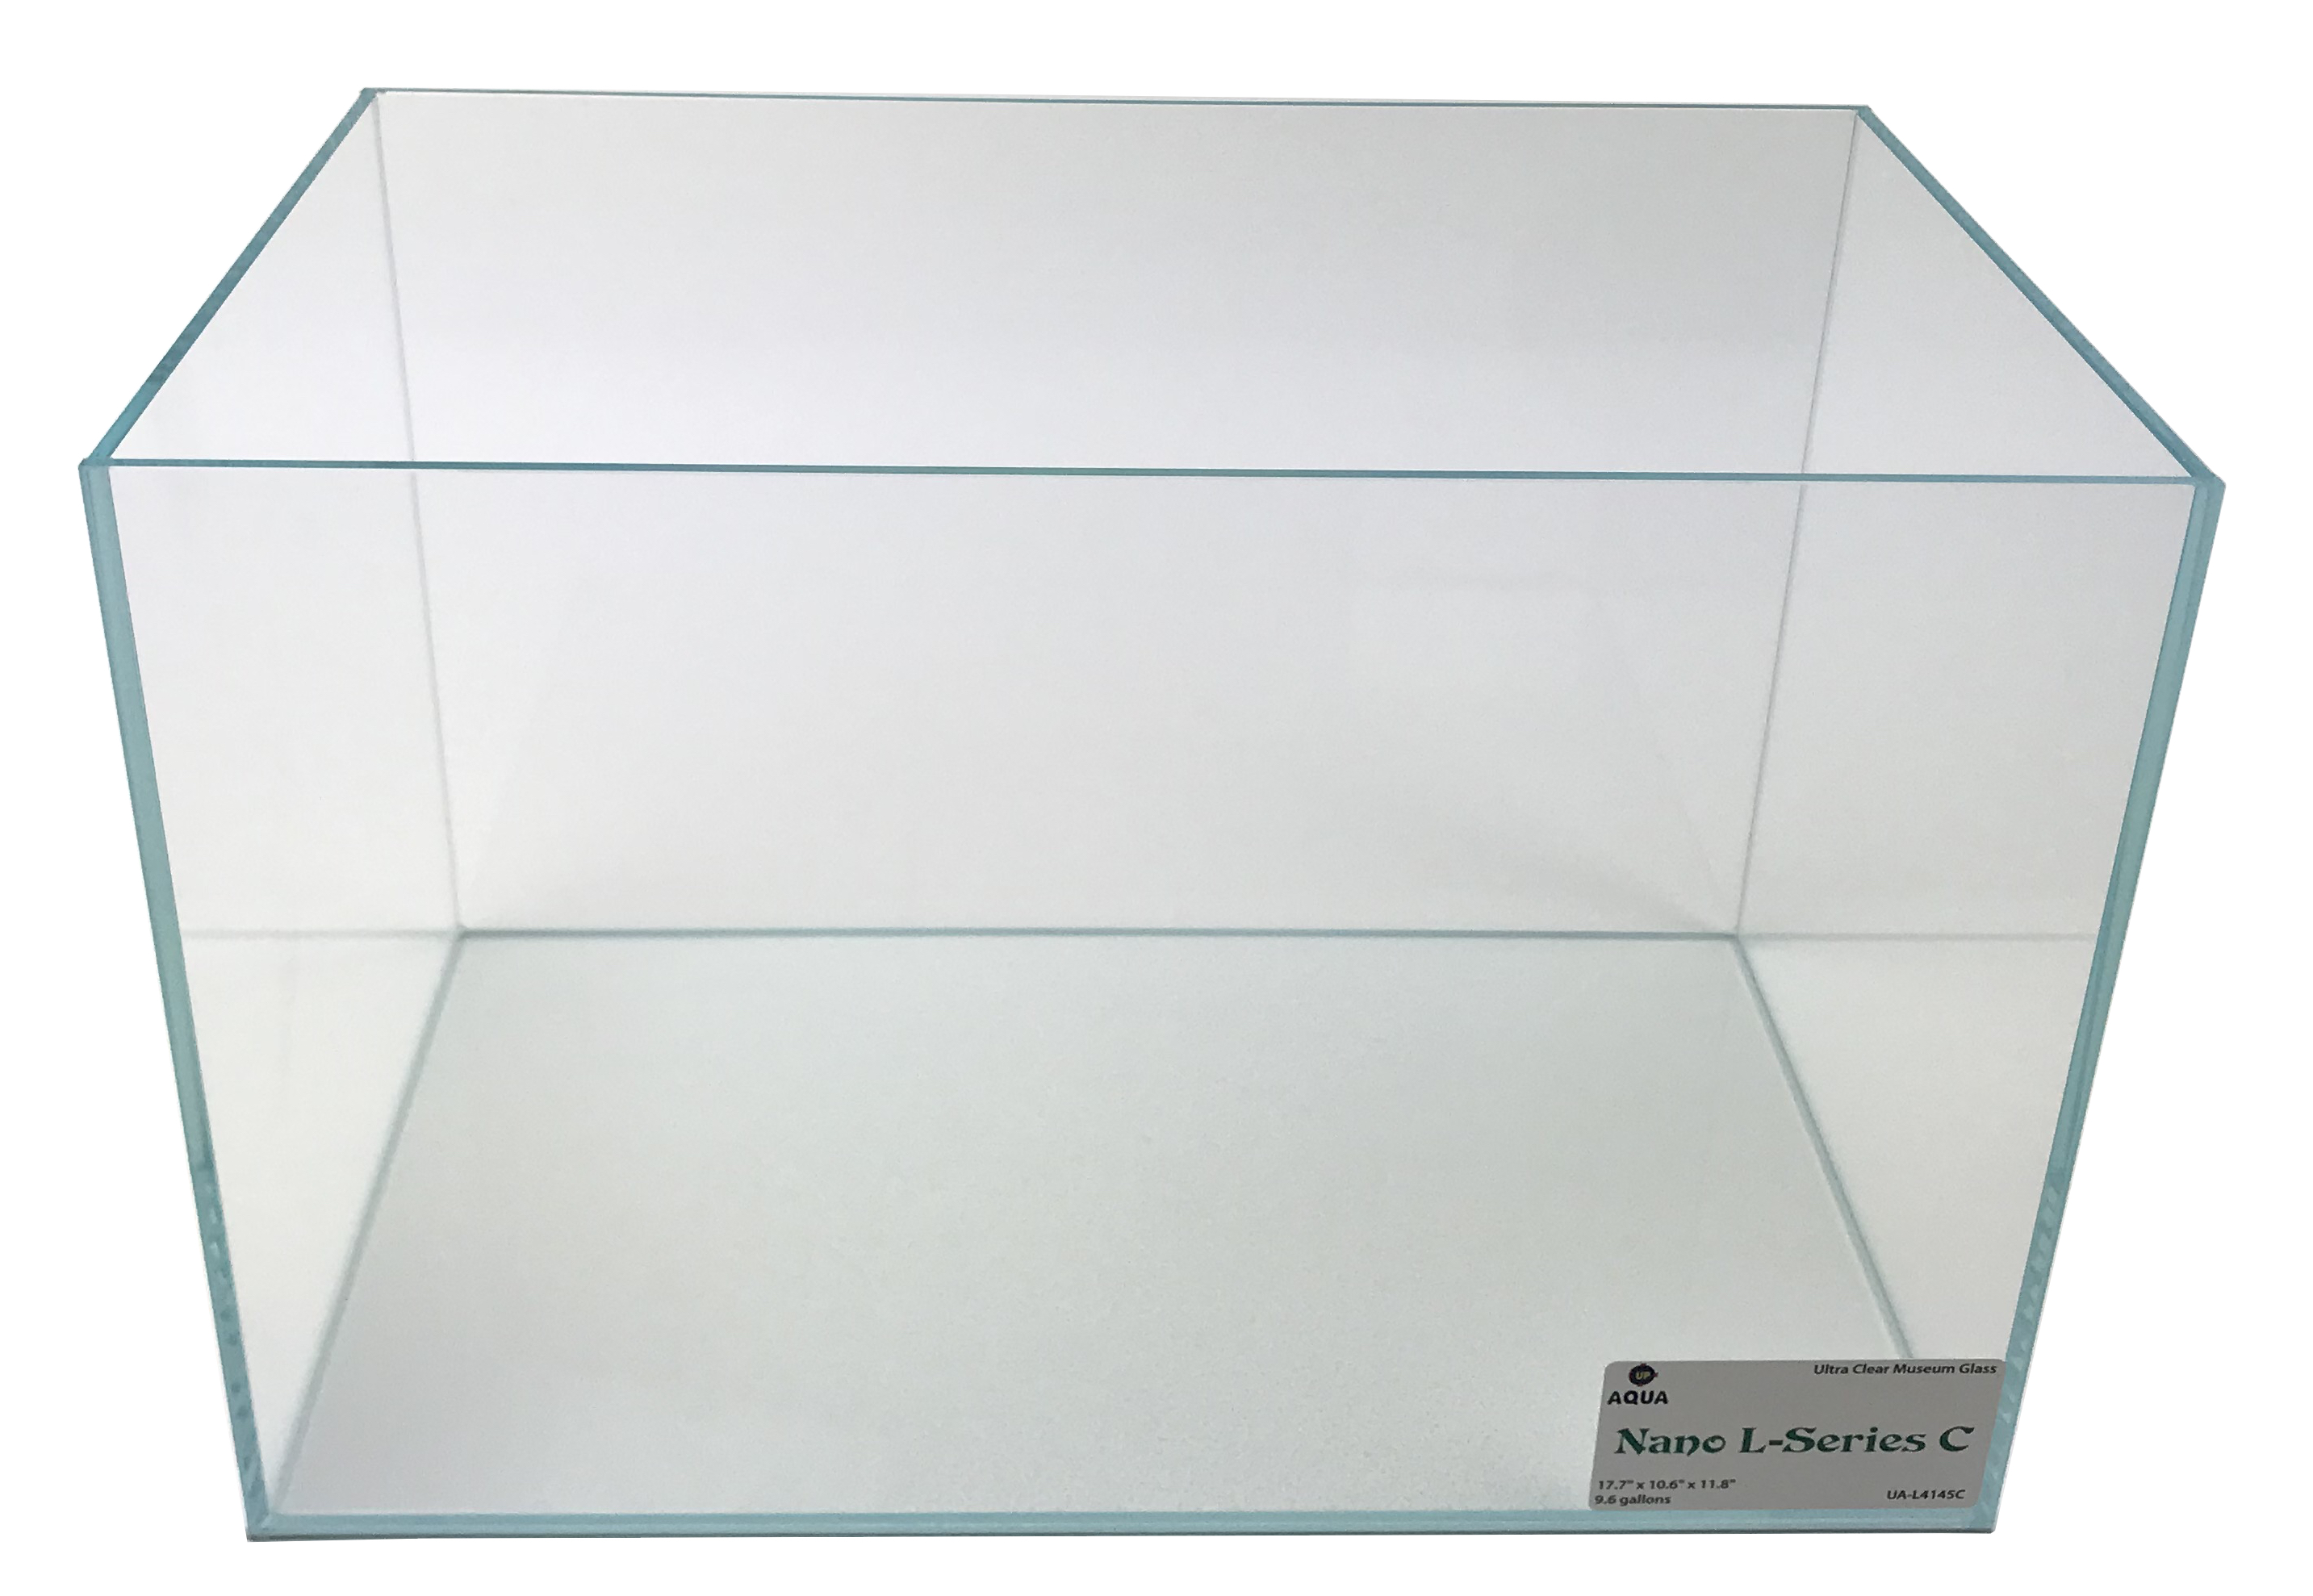 Nano L-series (LI) Ultra Clear Aquarium C - 9.6 Gal. 17.7